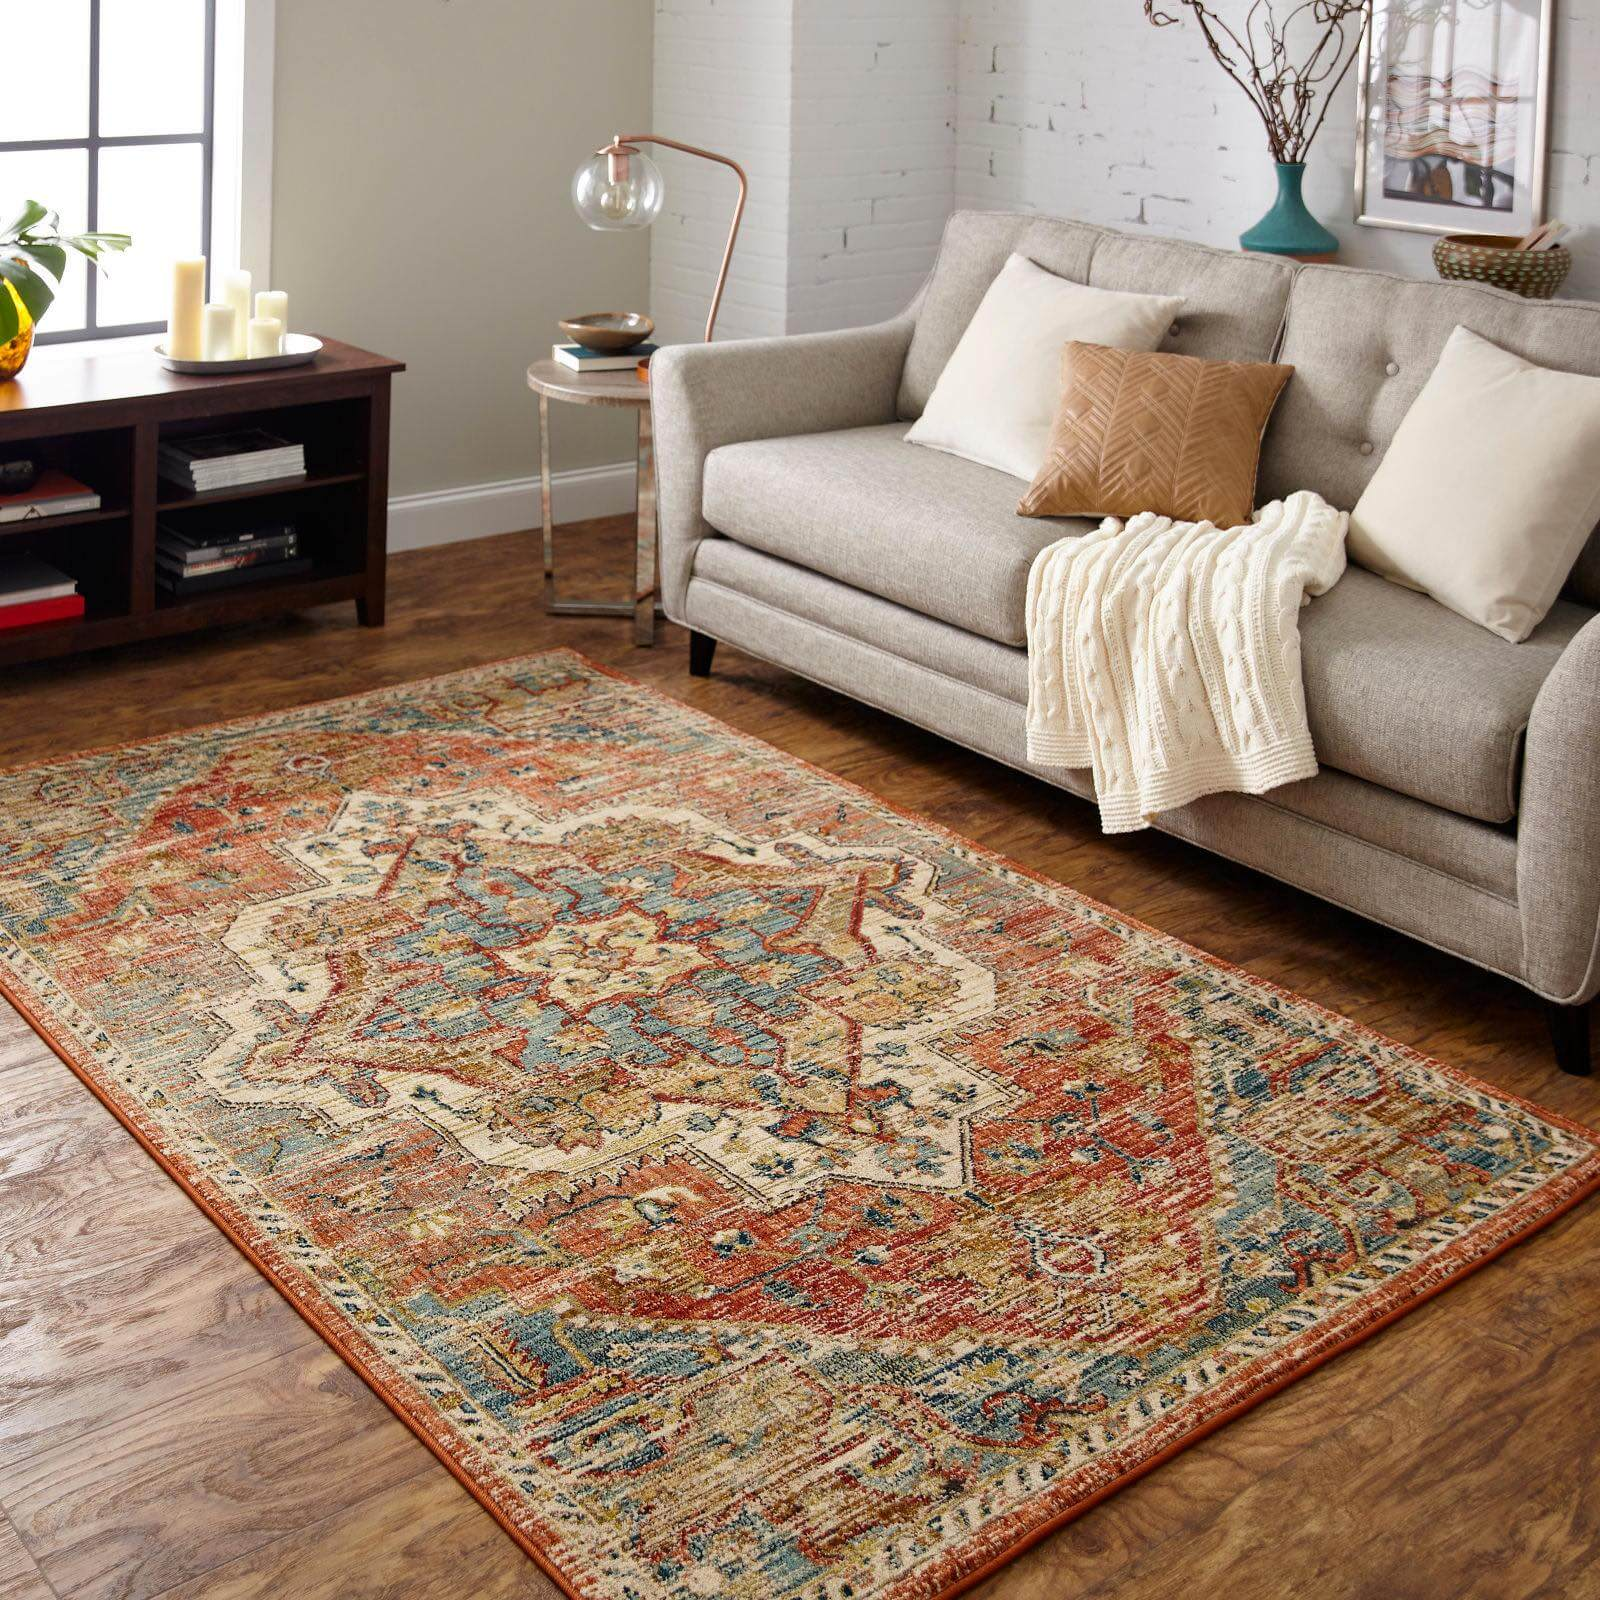 Select a Rug for Your Living Area | Price Flooring